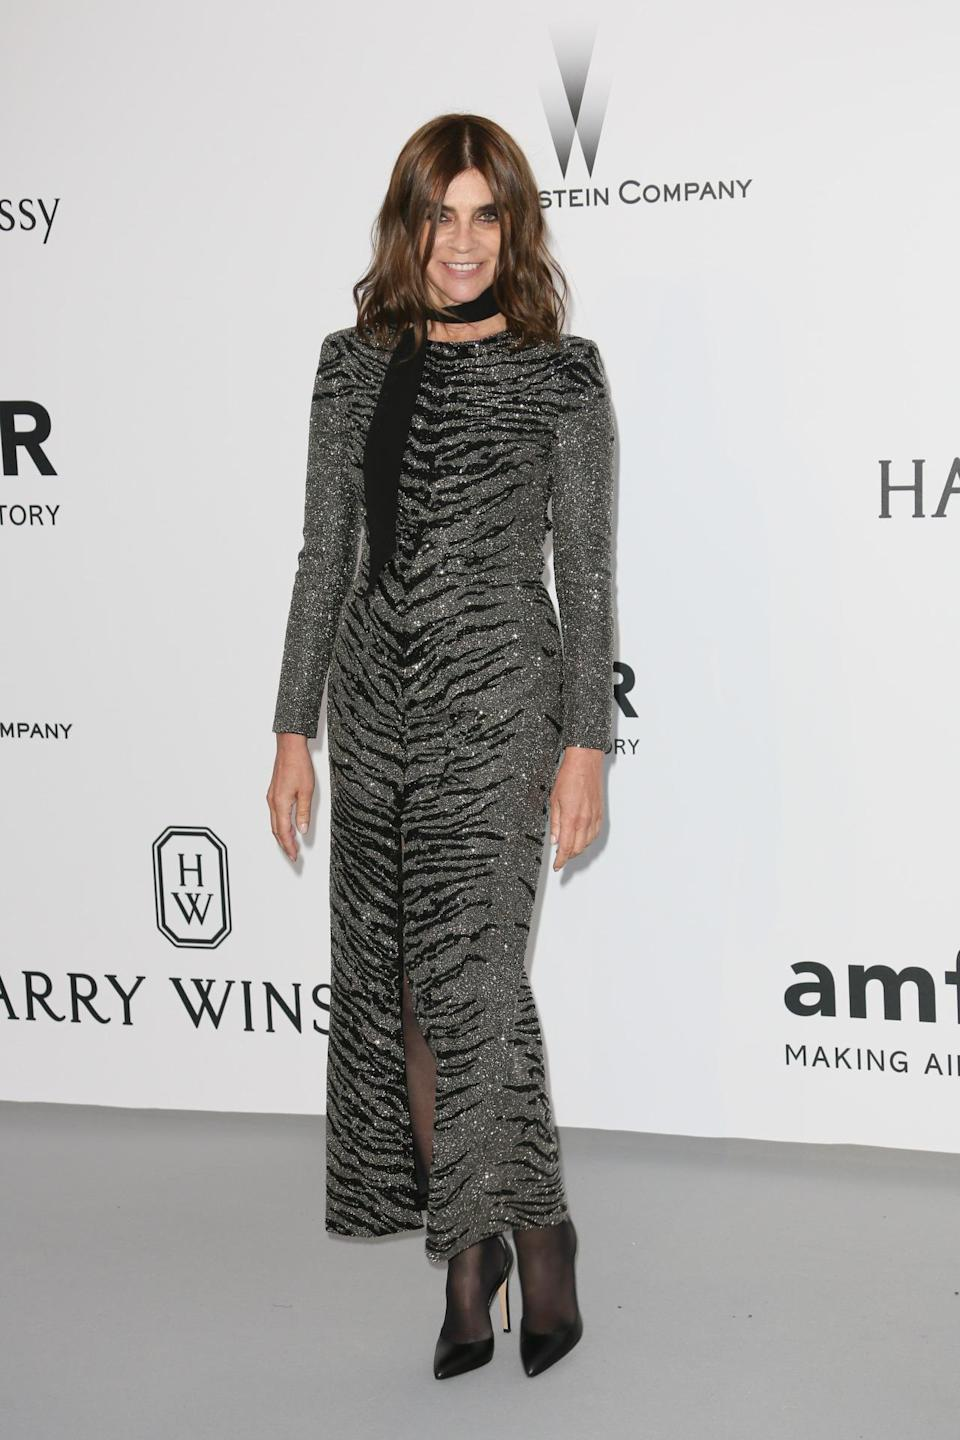 <p>We're fairly certain that Carine Roitfeld is the only woman in the world who's capable of wearing a glittery, body-con, zebra-print dress—and still looking like the classiest broad on the block. The editrix keeps things cool in the busy print by accessorizing with slept-in hair (and makeup—a Carine staple), plus a simple black scarf tied around her neck. Rawr… or in this case… neigh? What sounds do zebras make, anyway? </p><p><i>Photo: Getty Images</i></p>